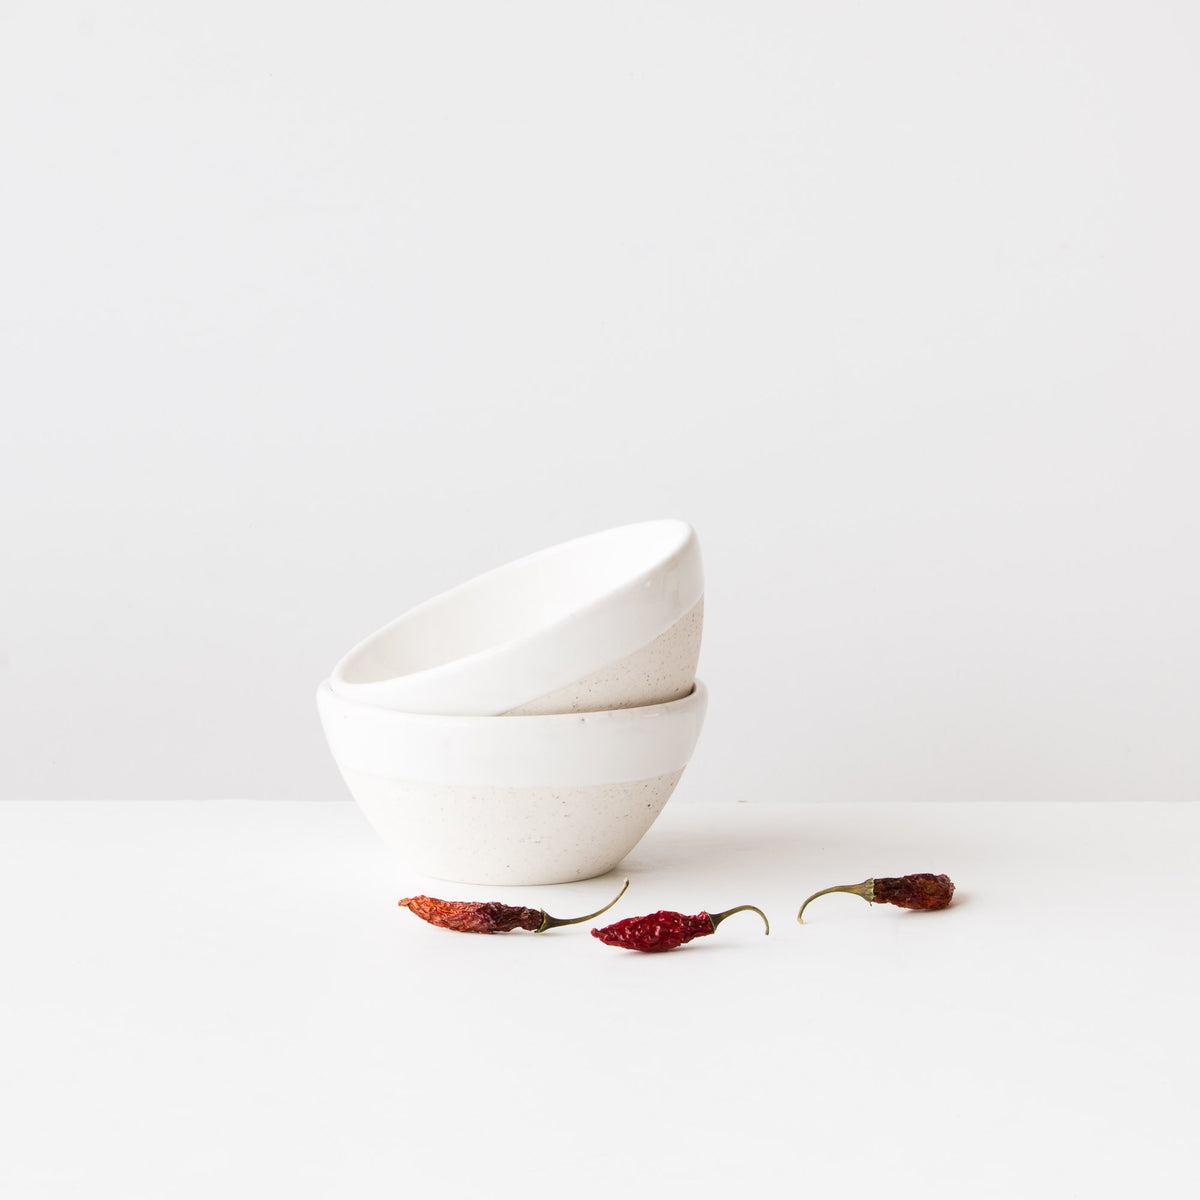 Oatmeal Clay - Soft White Glaze. - Two Hand-Thrown Small Pottery Soup Bowls - Sold by Chic & Basta